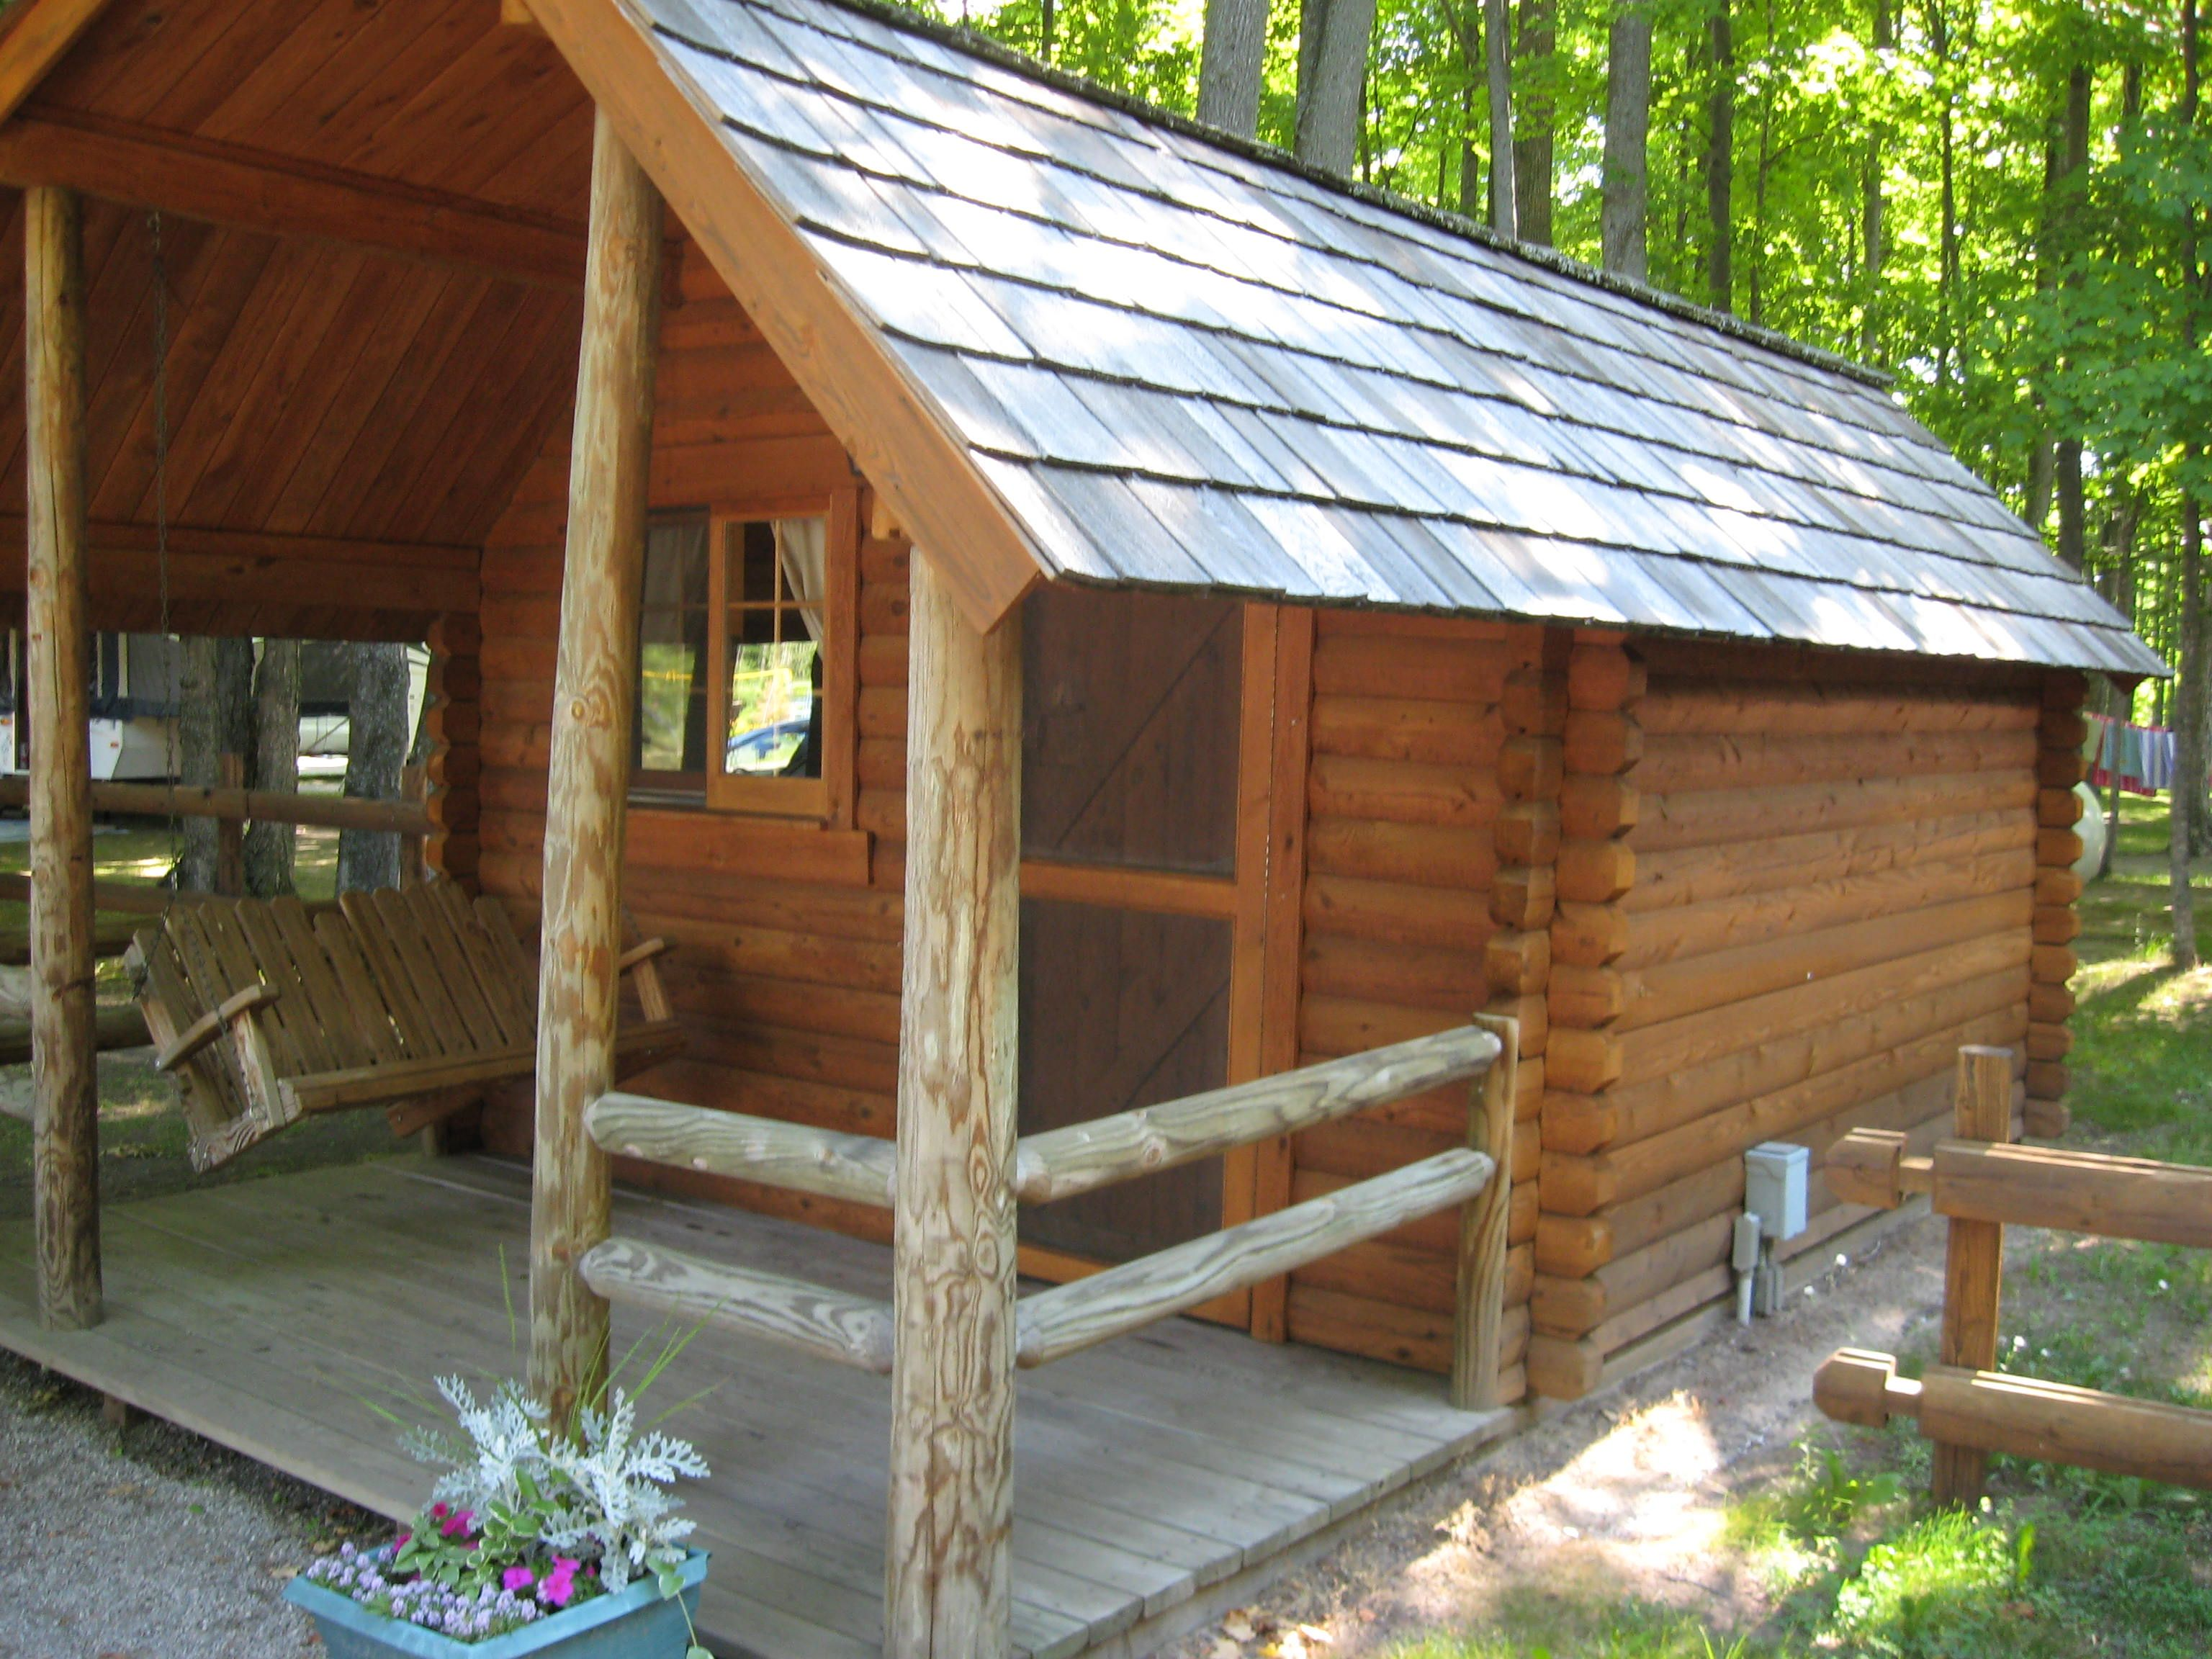 Camping cabins, traverse city and cabin on pinterest